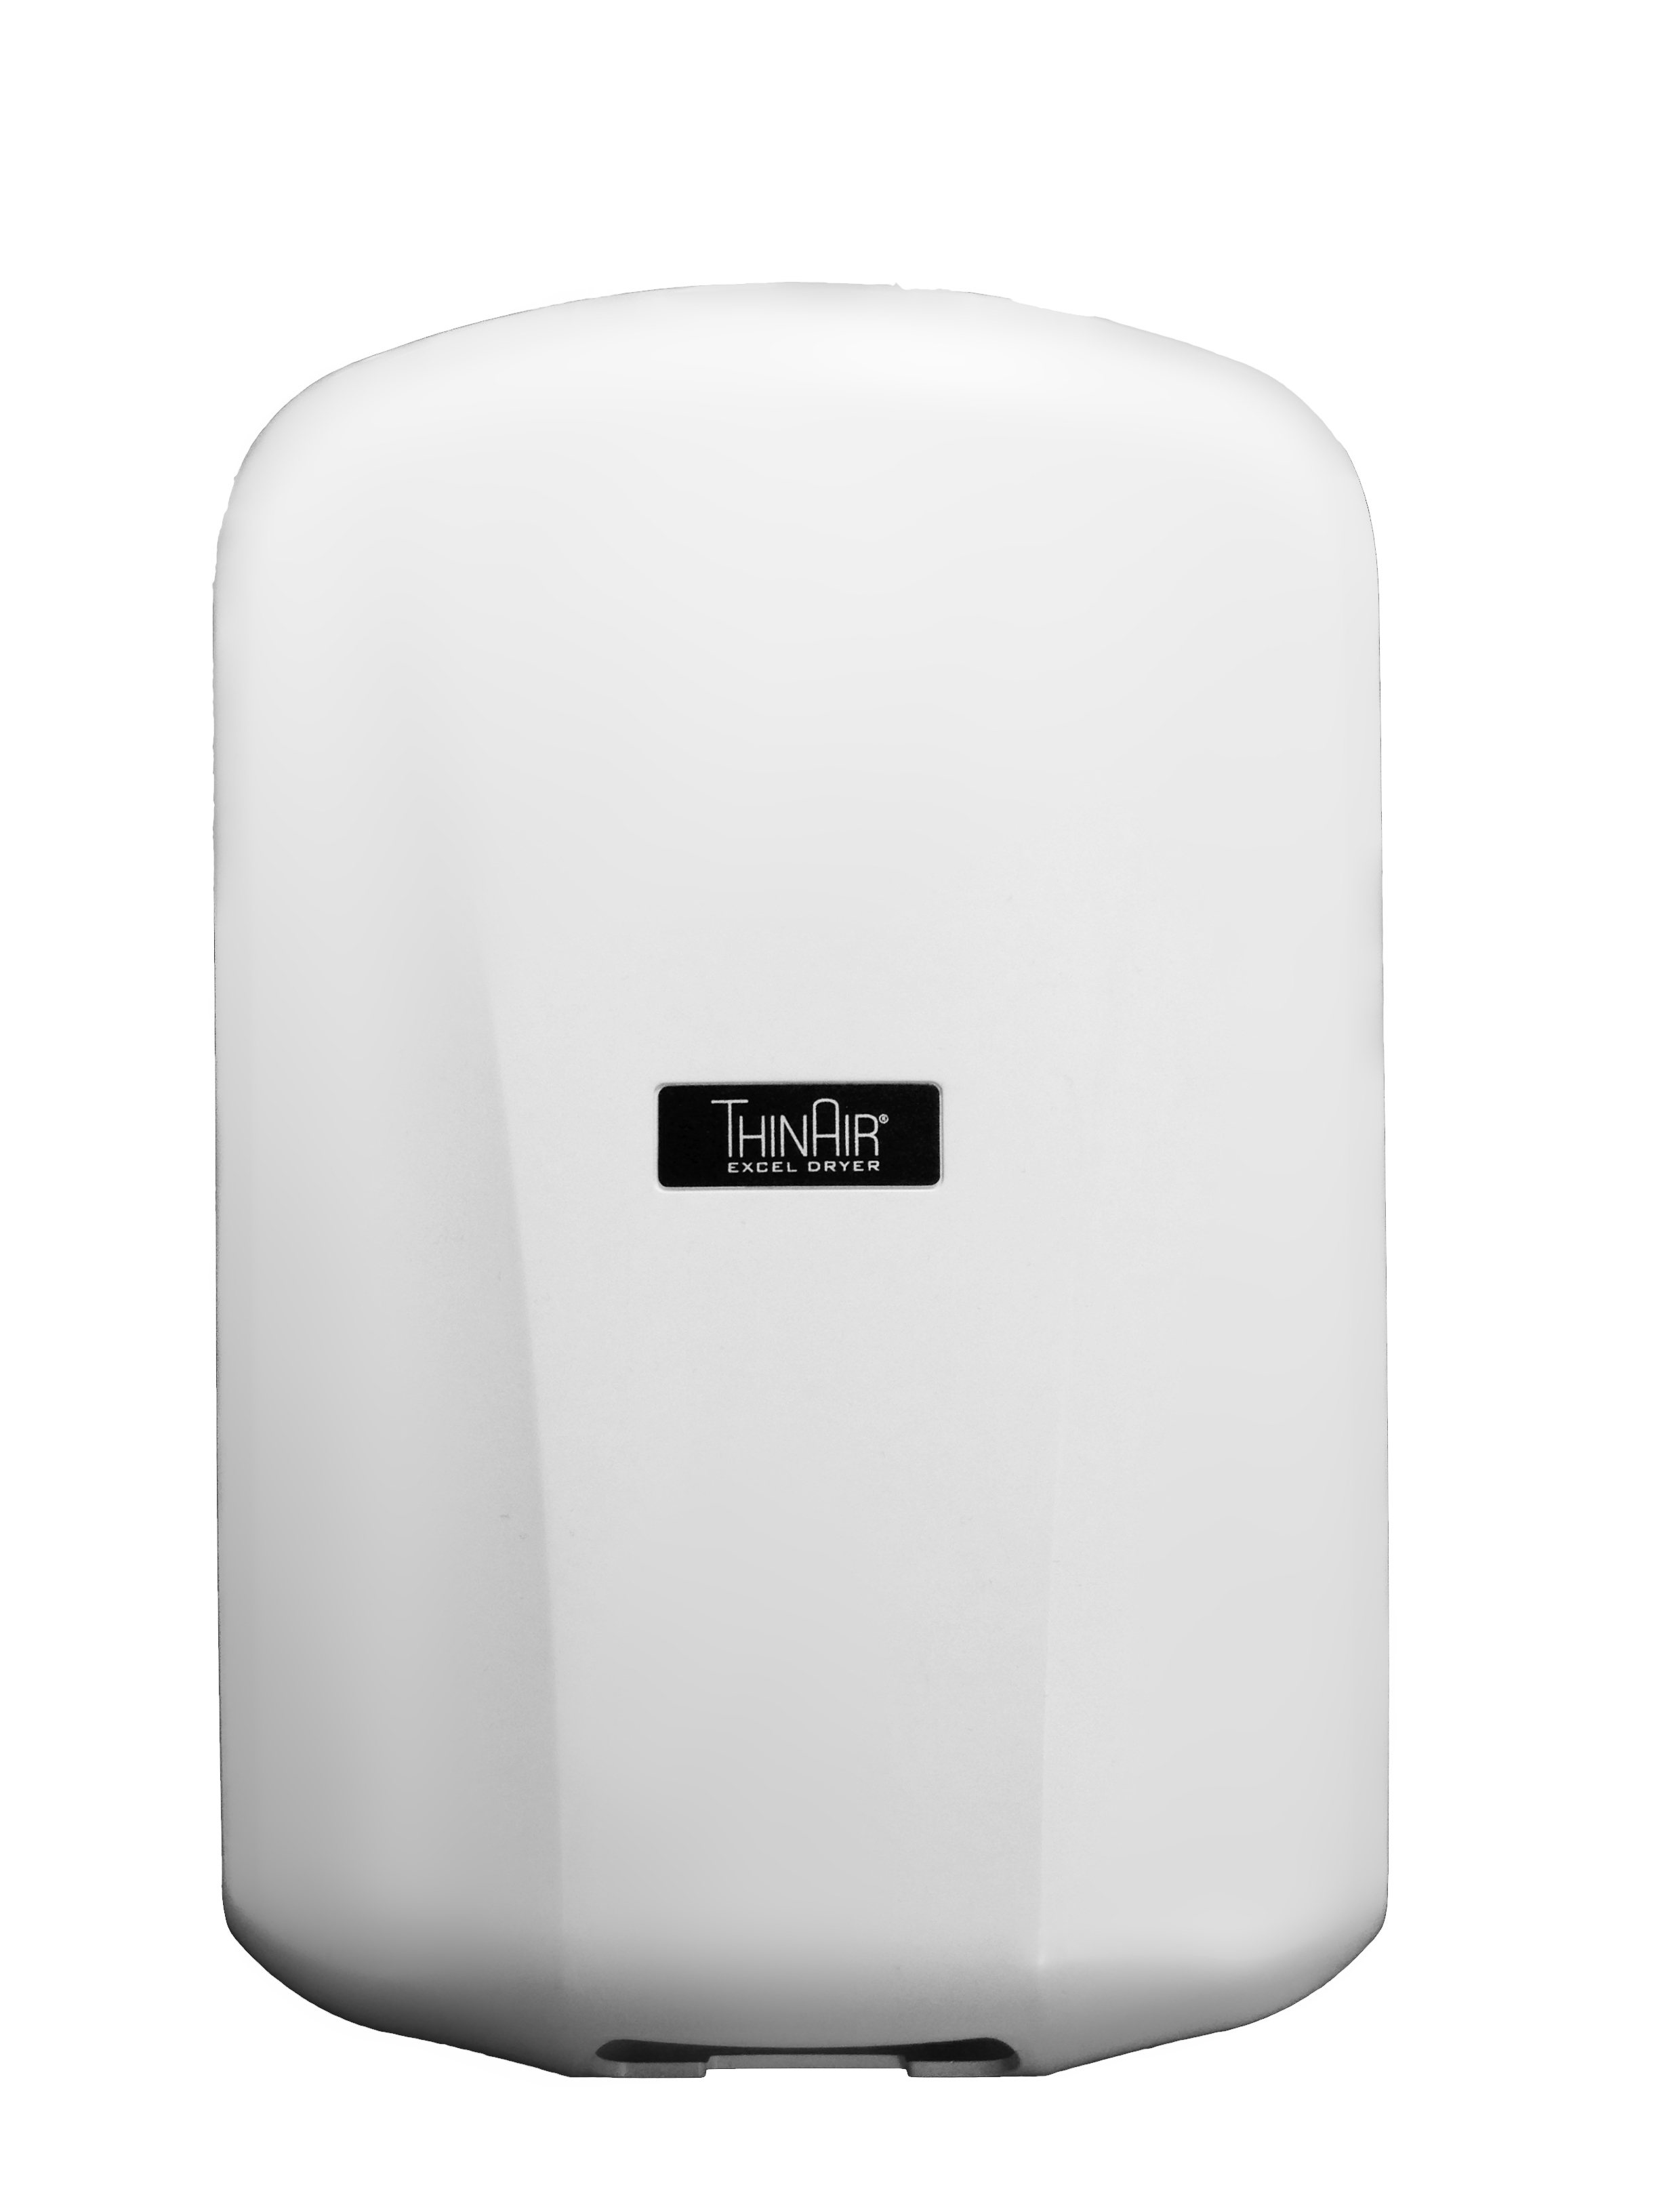 excel dryer announces new surface mounted slimmer profile thinair hand dryer business wire - Excel Hand Dryer